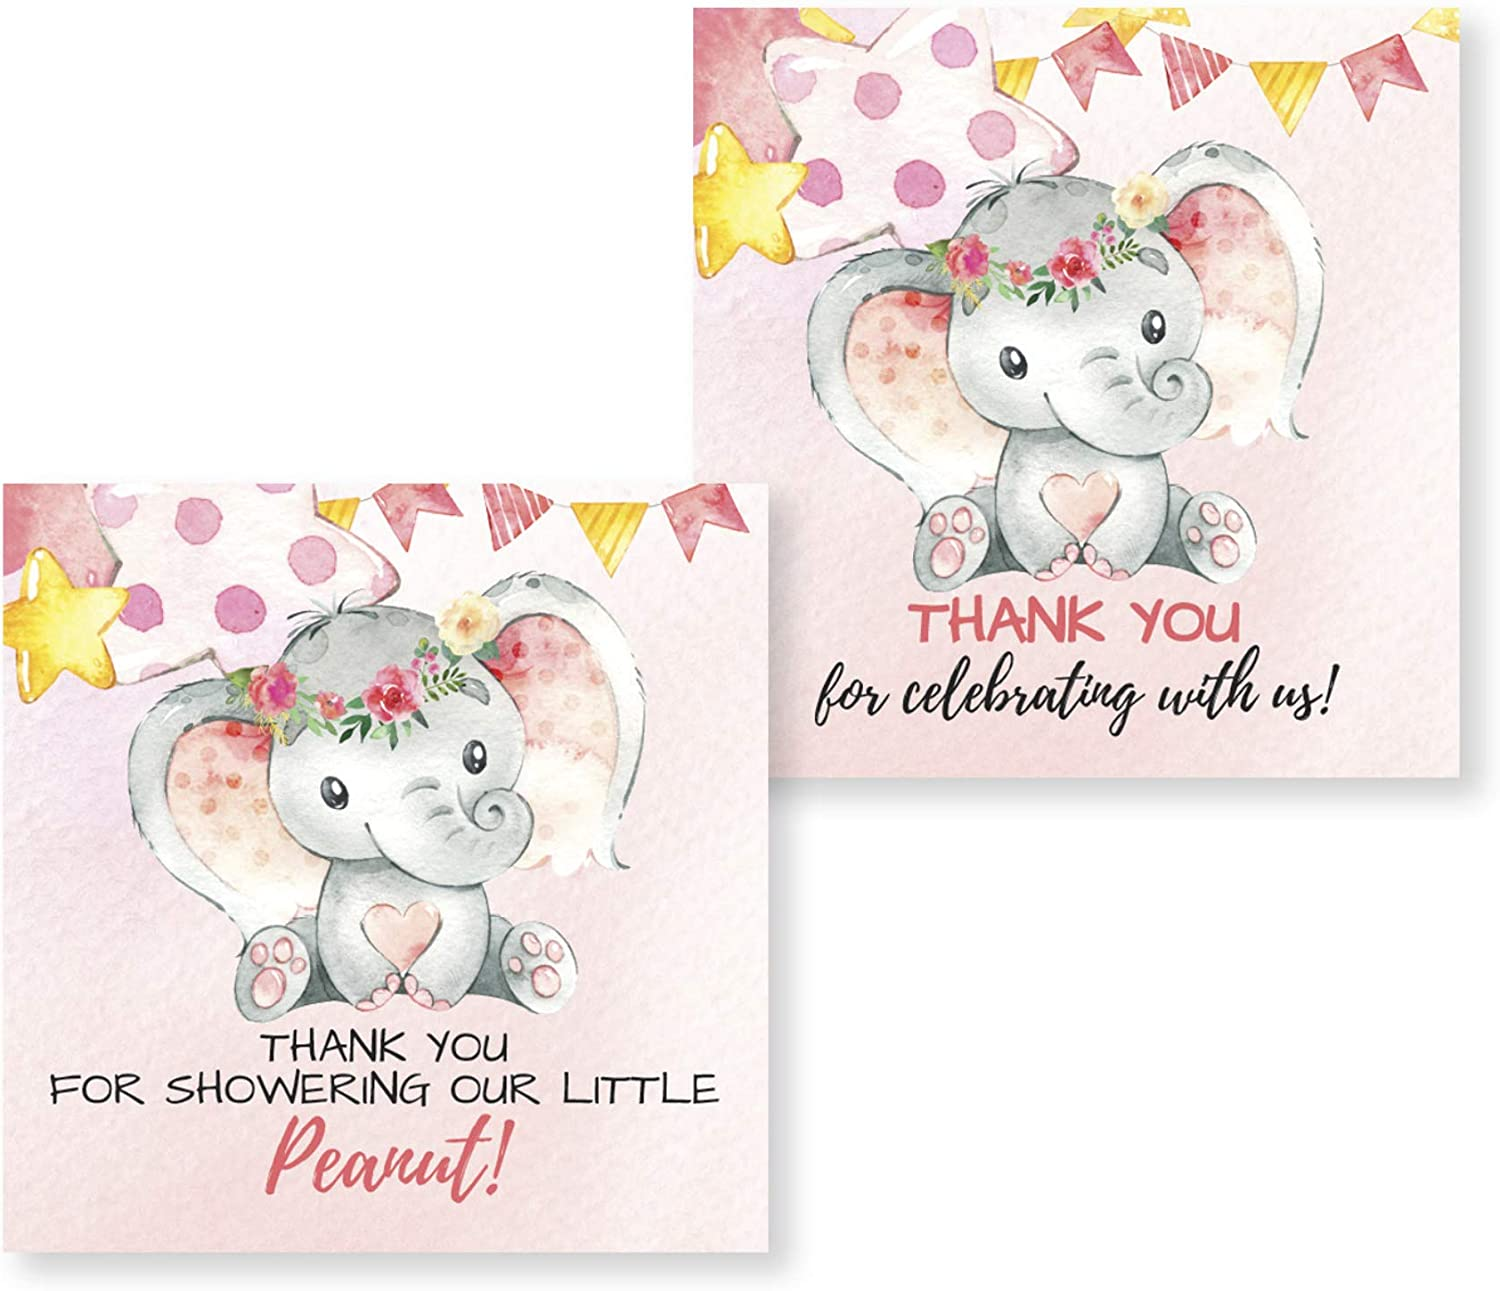 50-2 Inch Thank You Baby Shower or Gender Reveal Elephant Stickers Pink & Gray Perfect for Thank You Card Envelopes, Party Favors Supplies Decorations